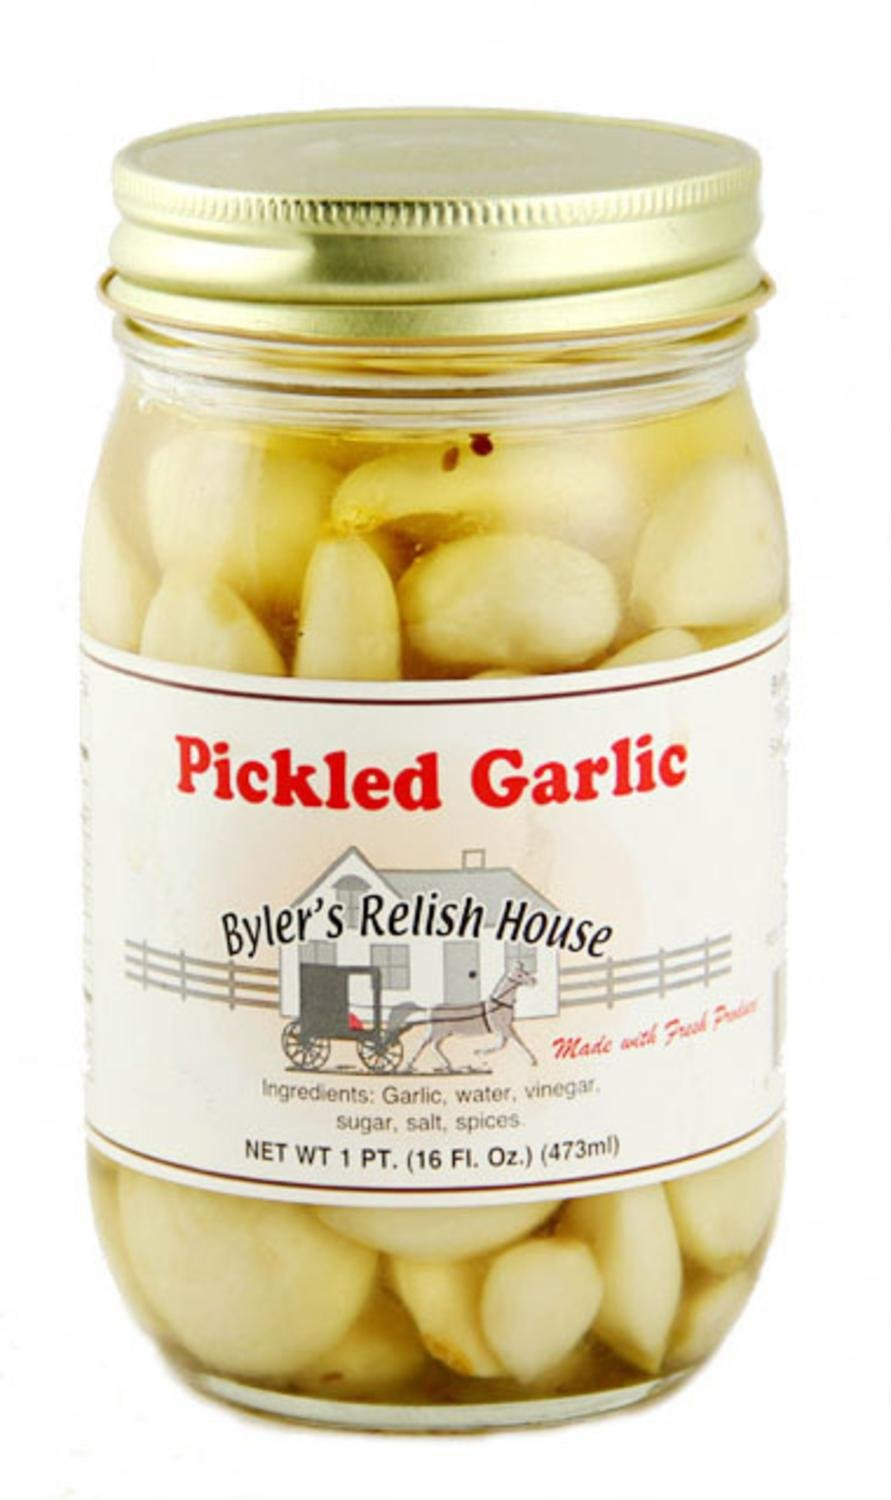 how to use pickled garlic